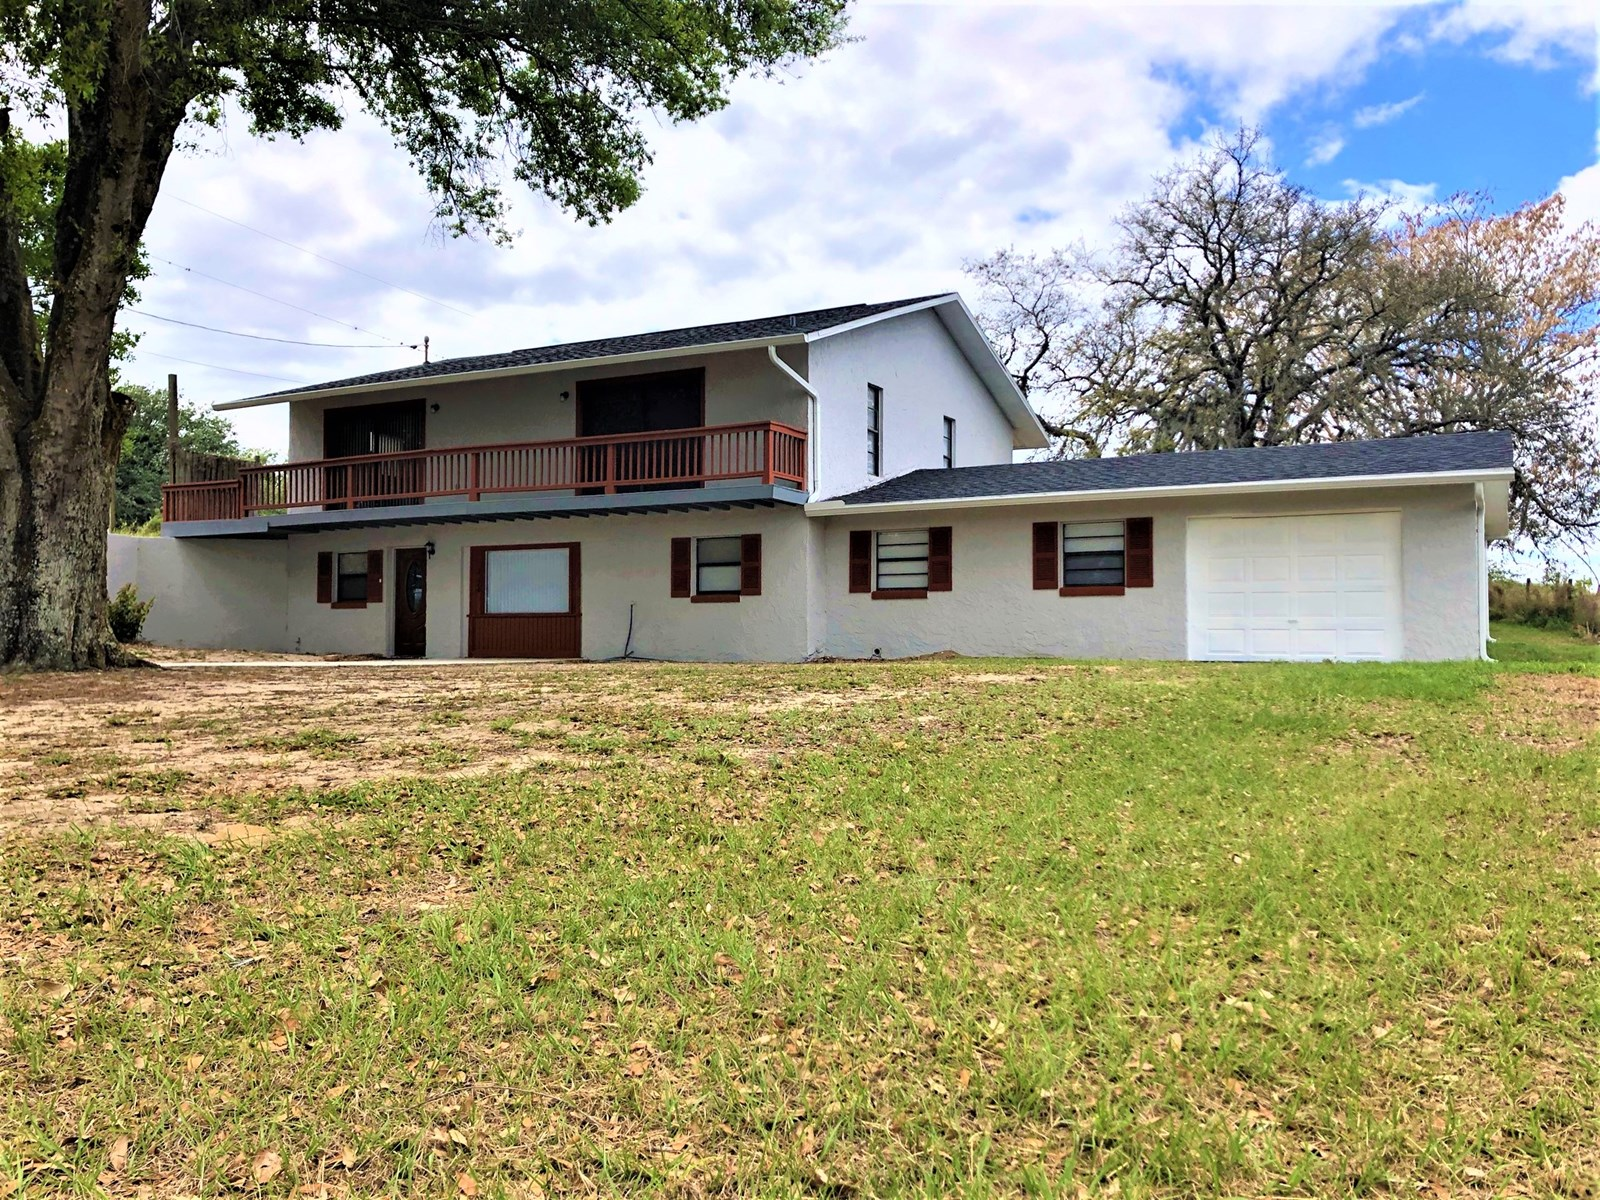 4/2 BLOCK HOME, 0.45 ACRE LOT, CENTRAL FLORIDA, FROSTPROOF